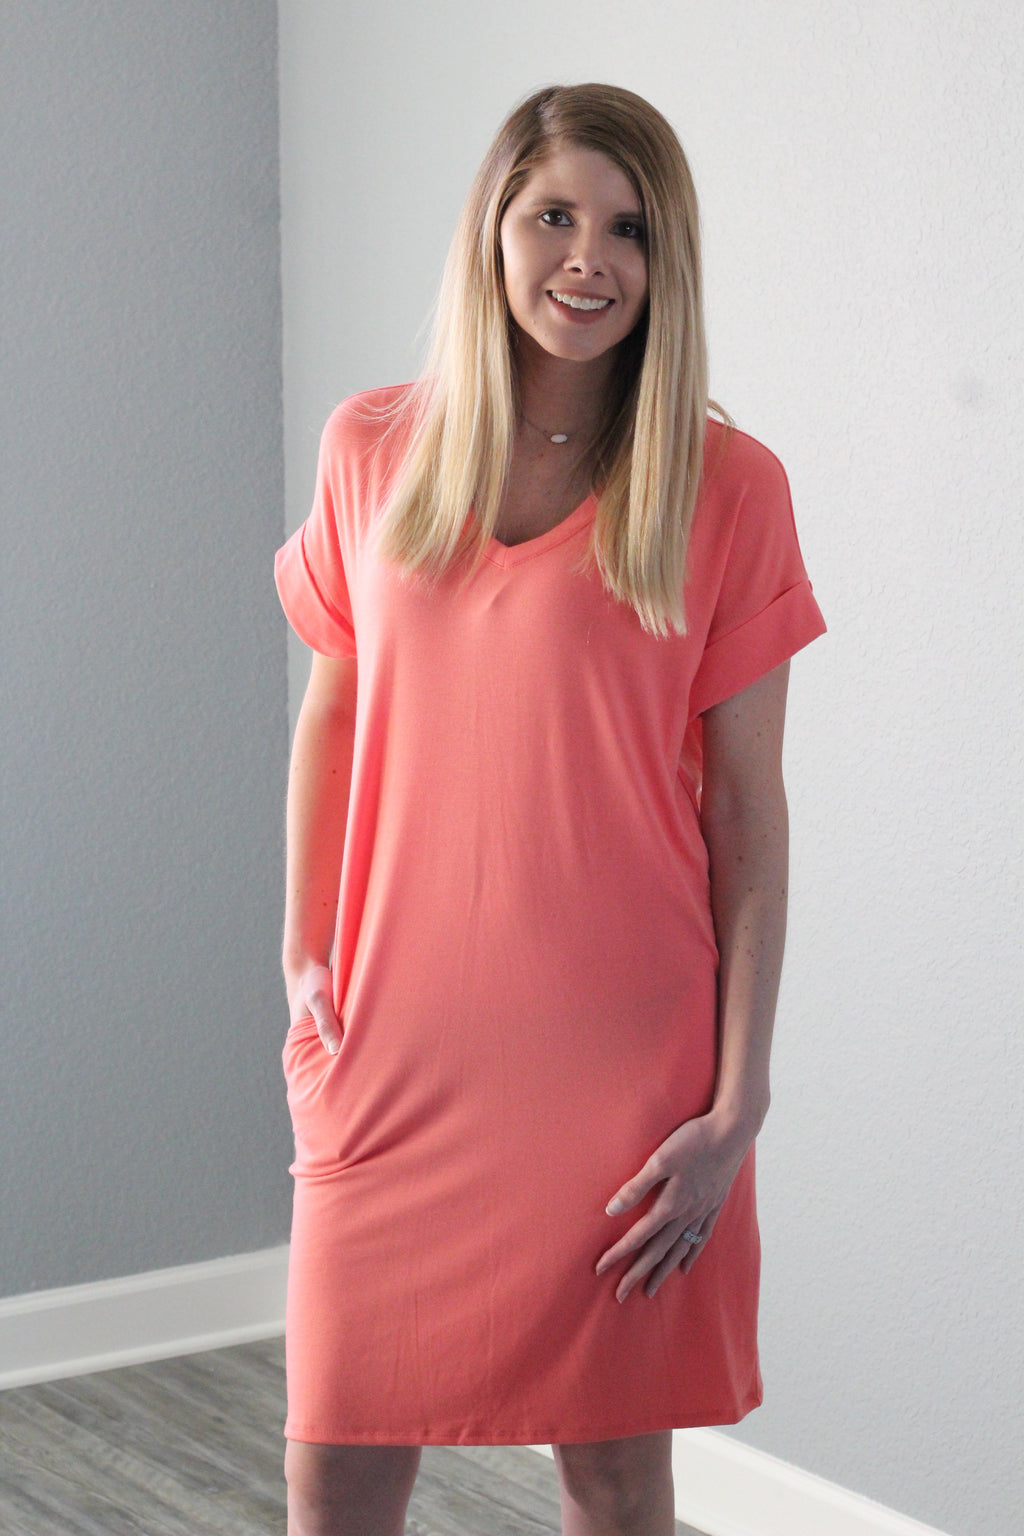 Sweetheart Dress (Coral)